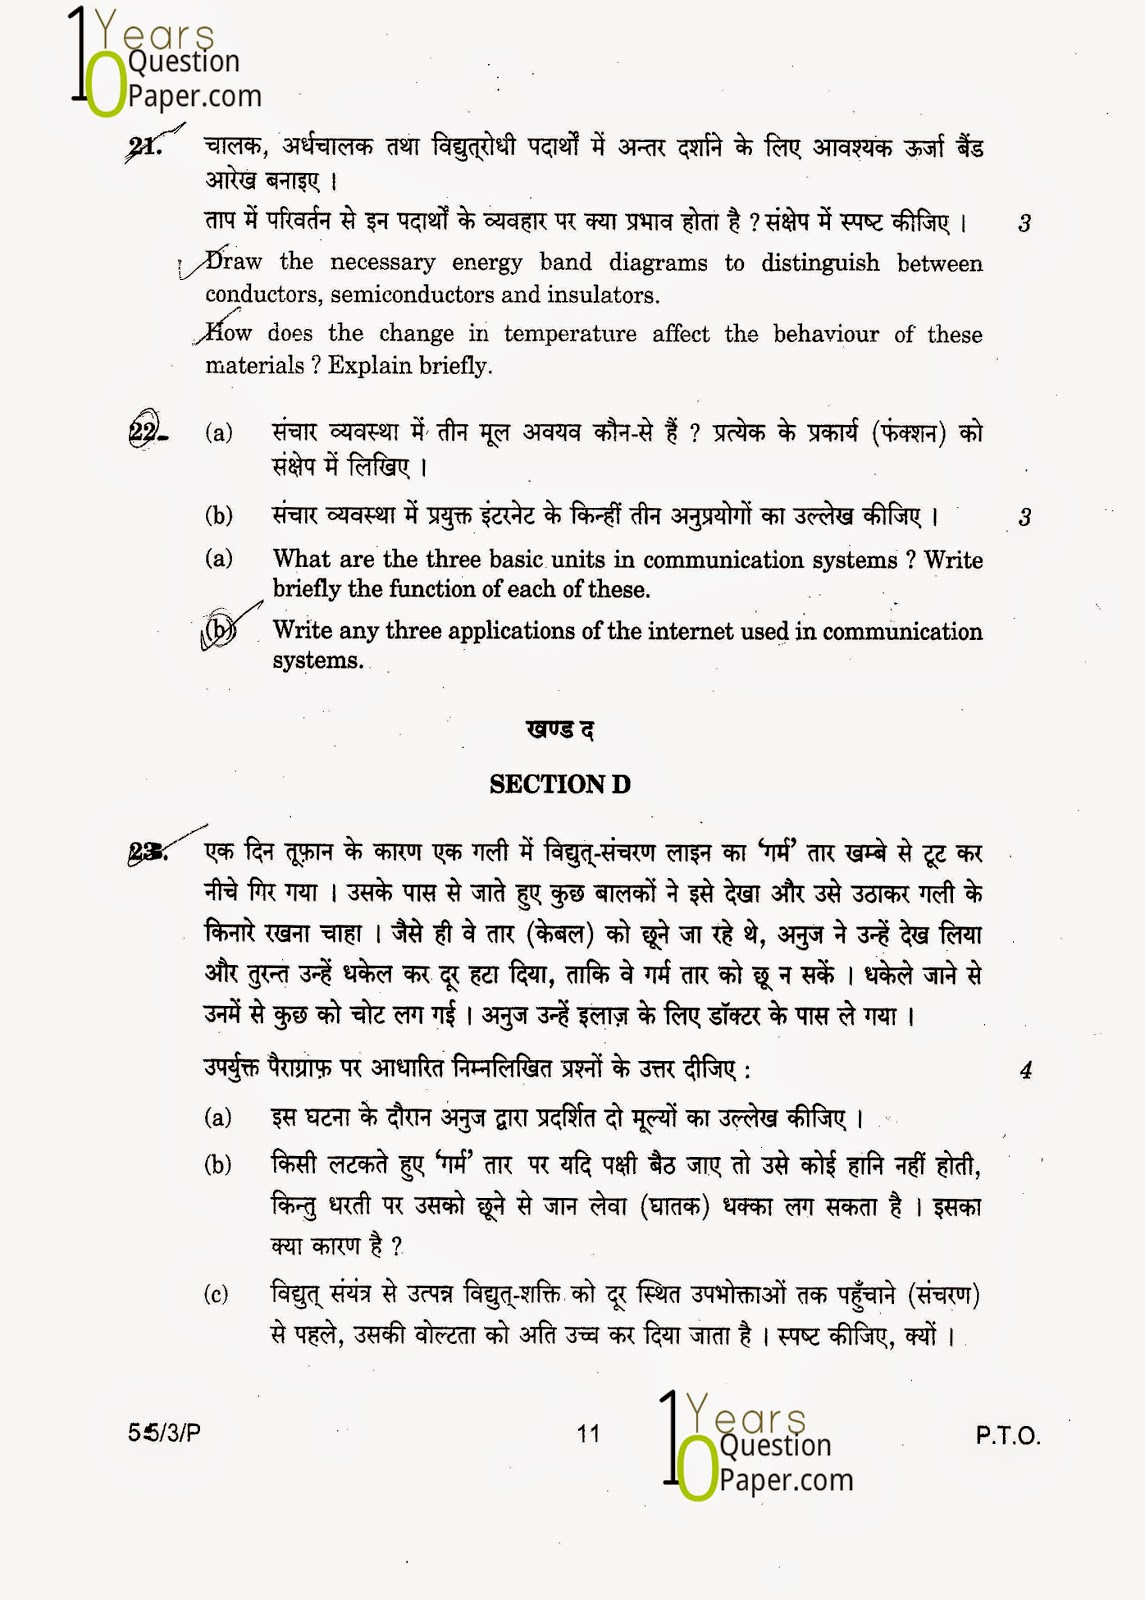 Cbse 2015 physics theory class 12 board question paper set 3 cbse class 12th 2015 physics question paper malvernweather Image collections